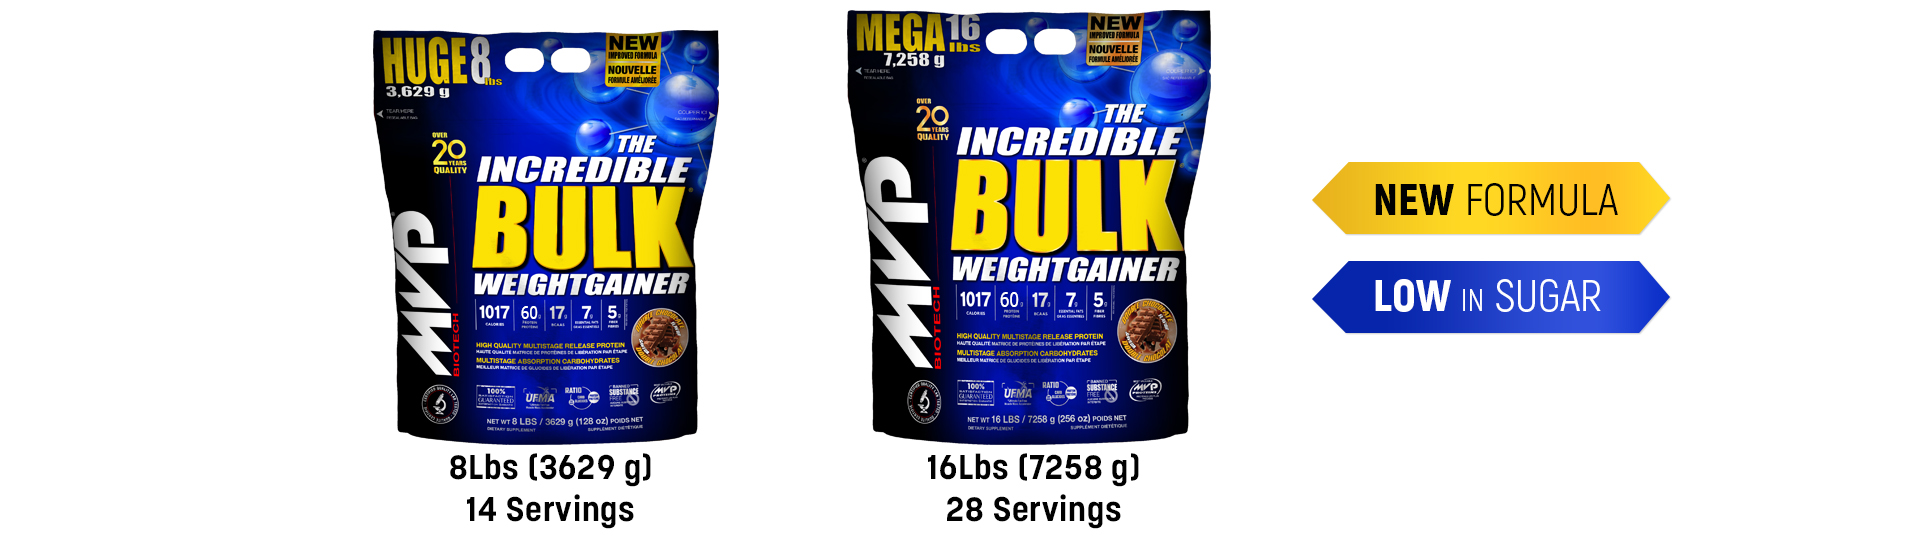 IncredibleBulk_AvailableSizes-new 60g protein edited by sam